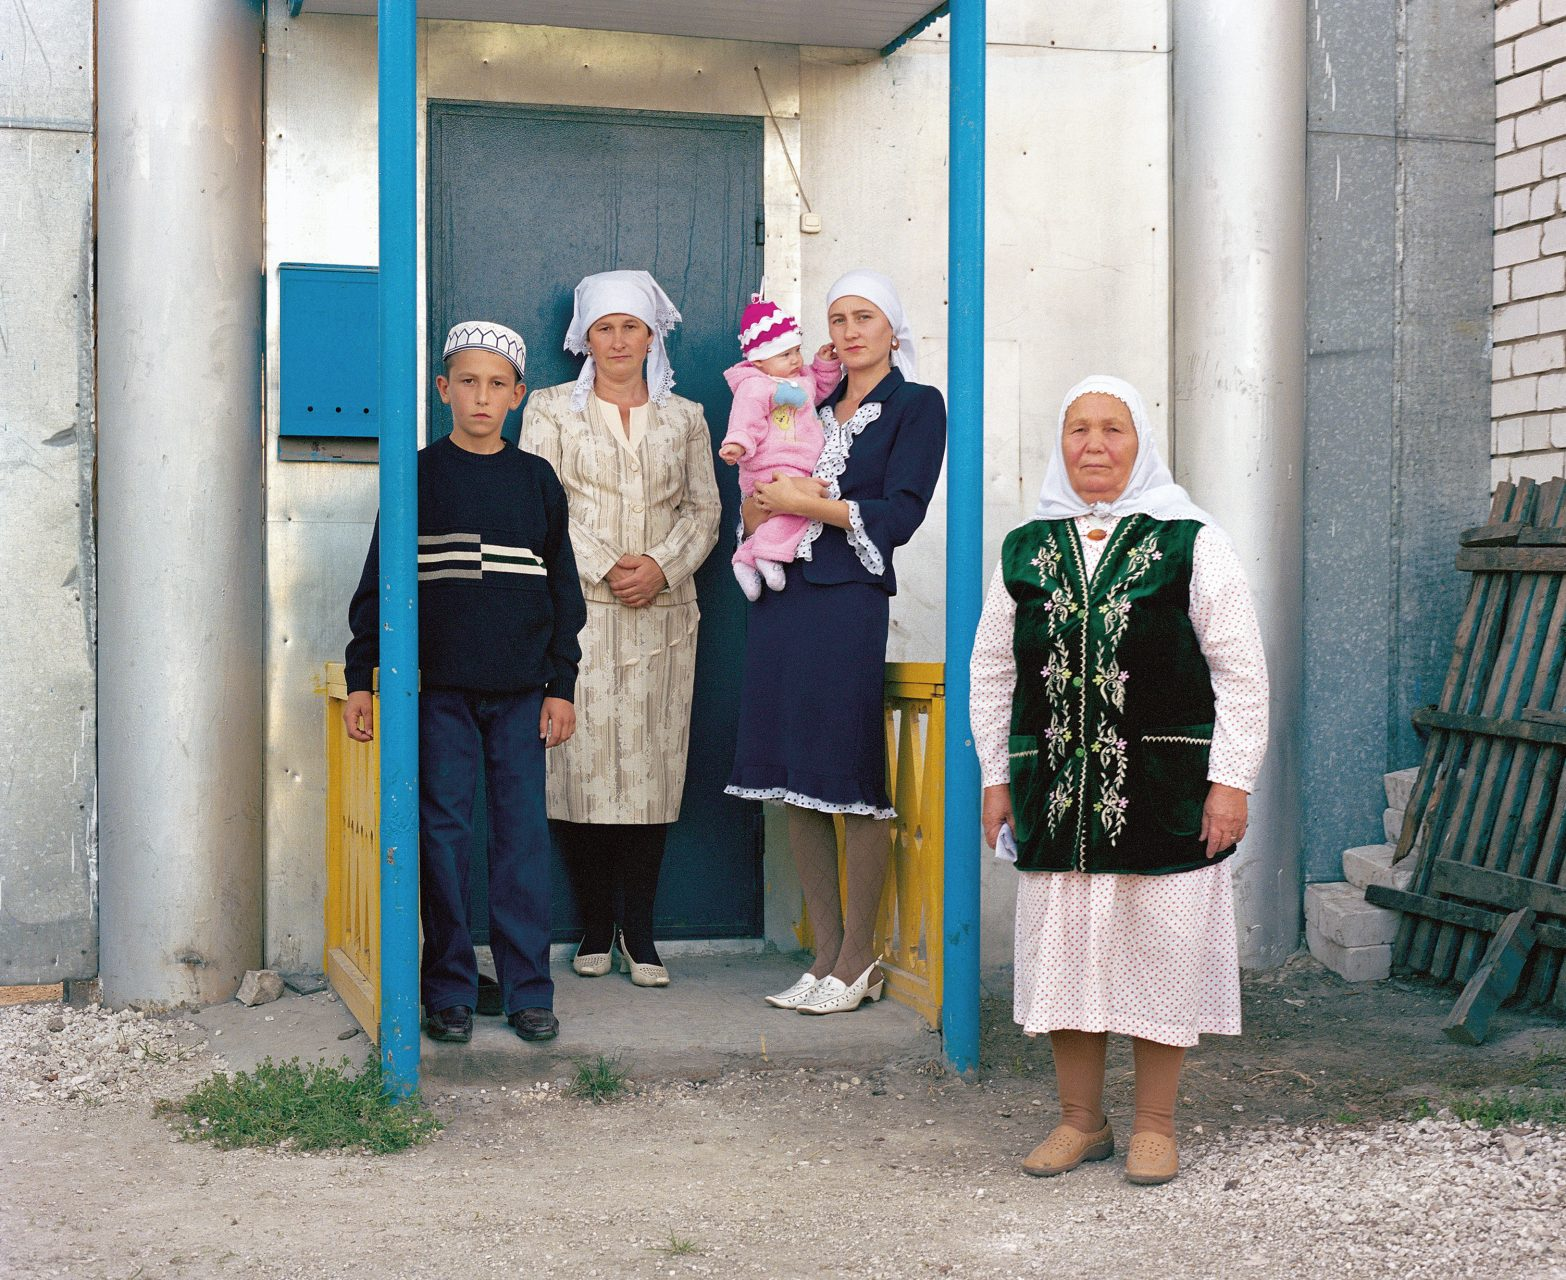 Russkie #19, c-print on dibond,100 x 120 cm, 2007